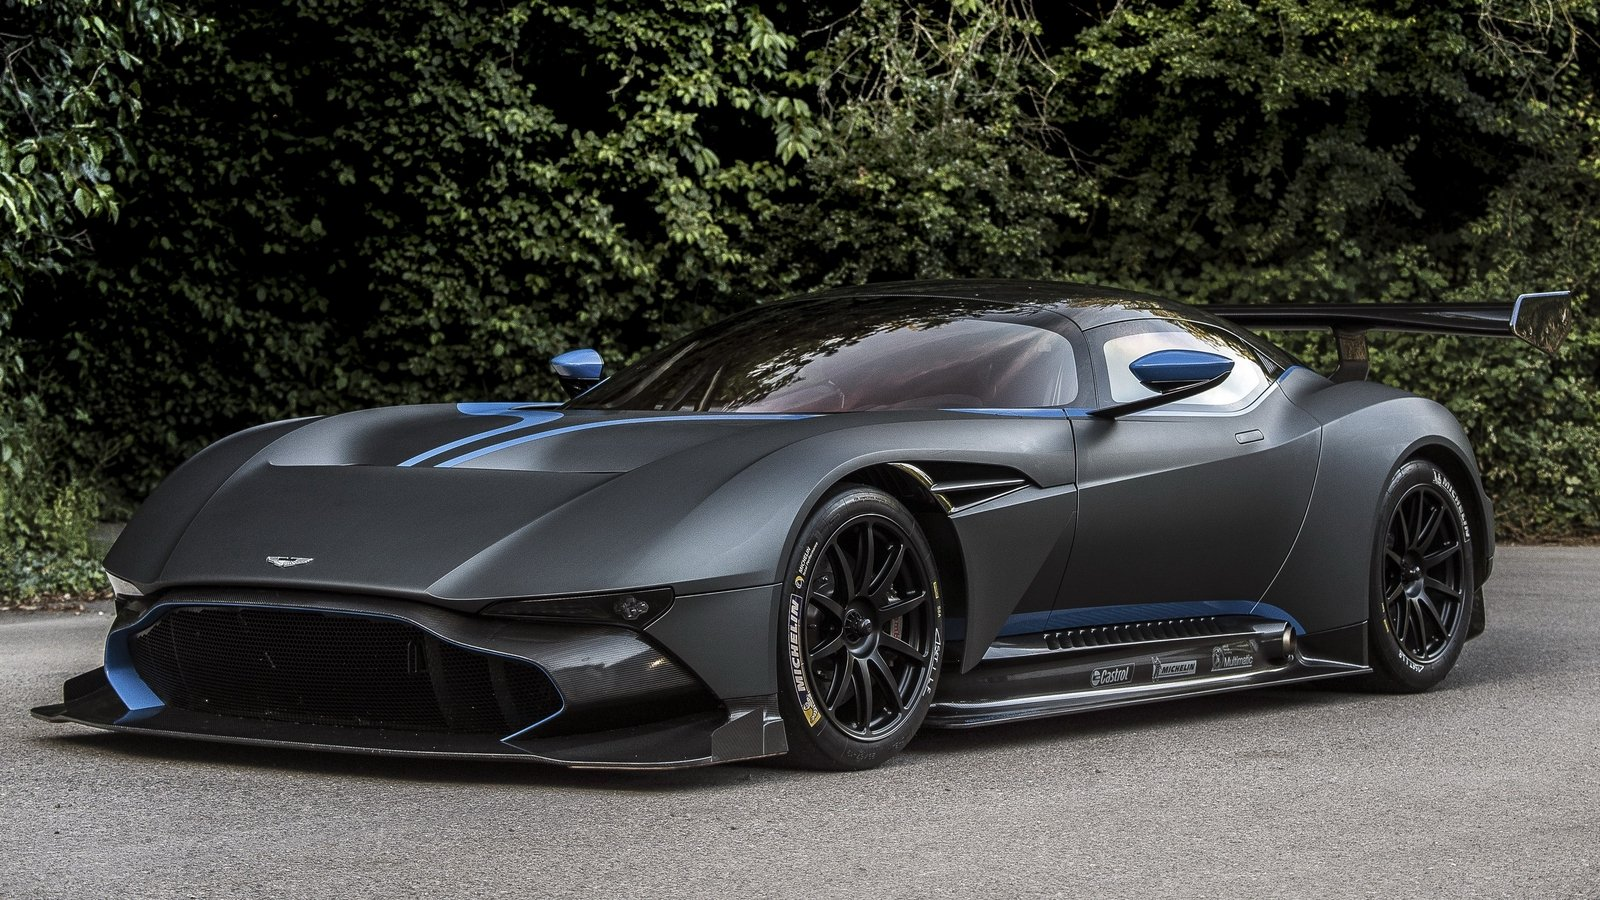 2016 aston martin vulcan picture 639233 car review top speed. Black Bedroom Furniture Sets. Home Design Ideas